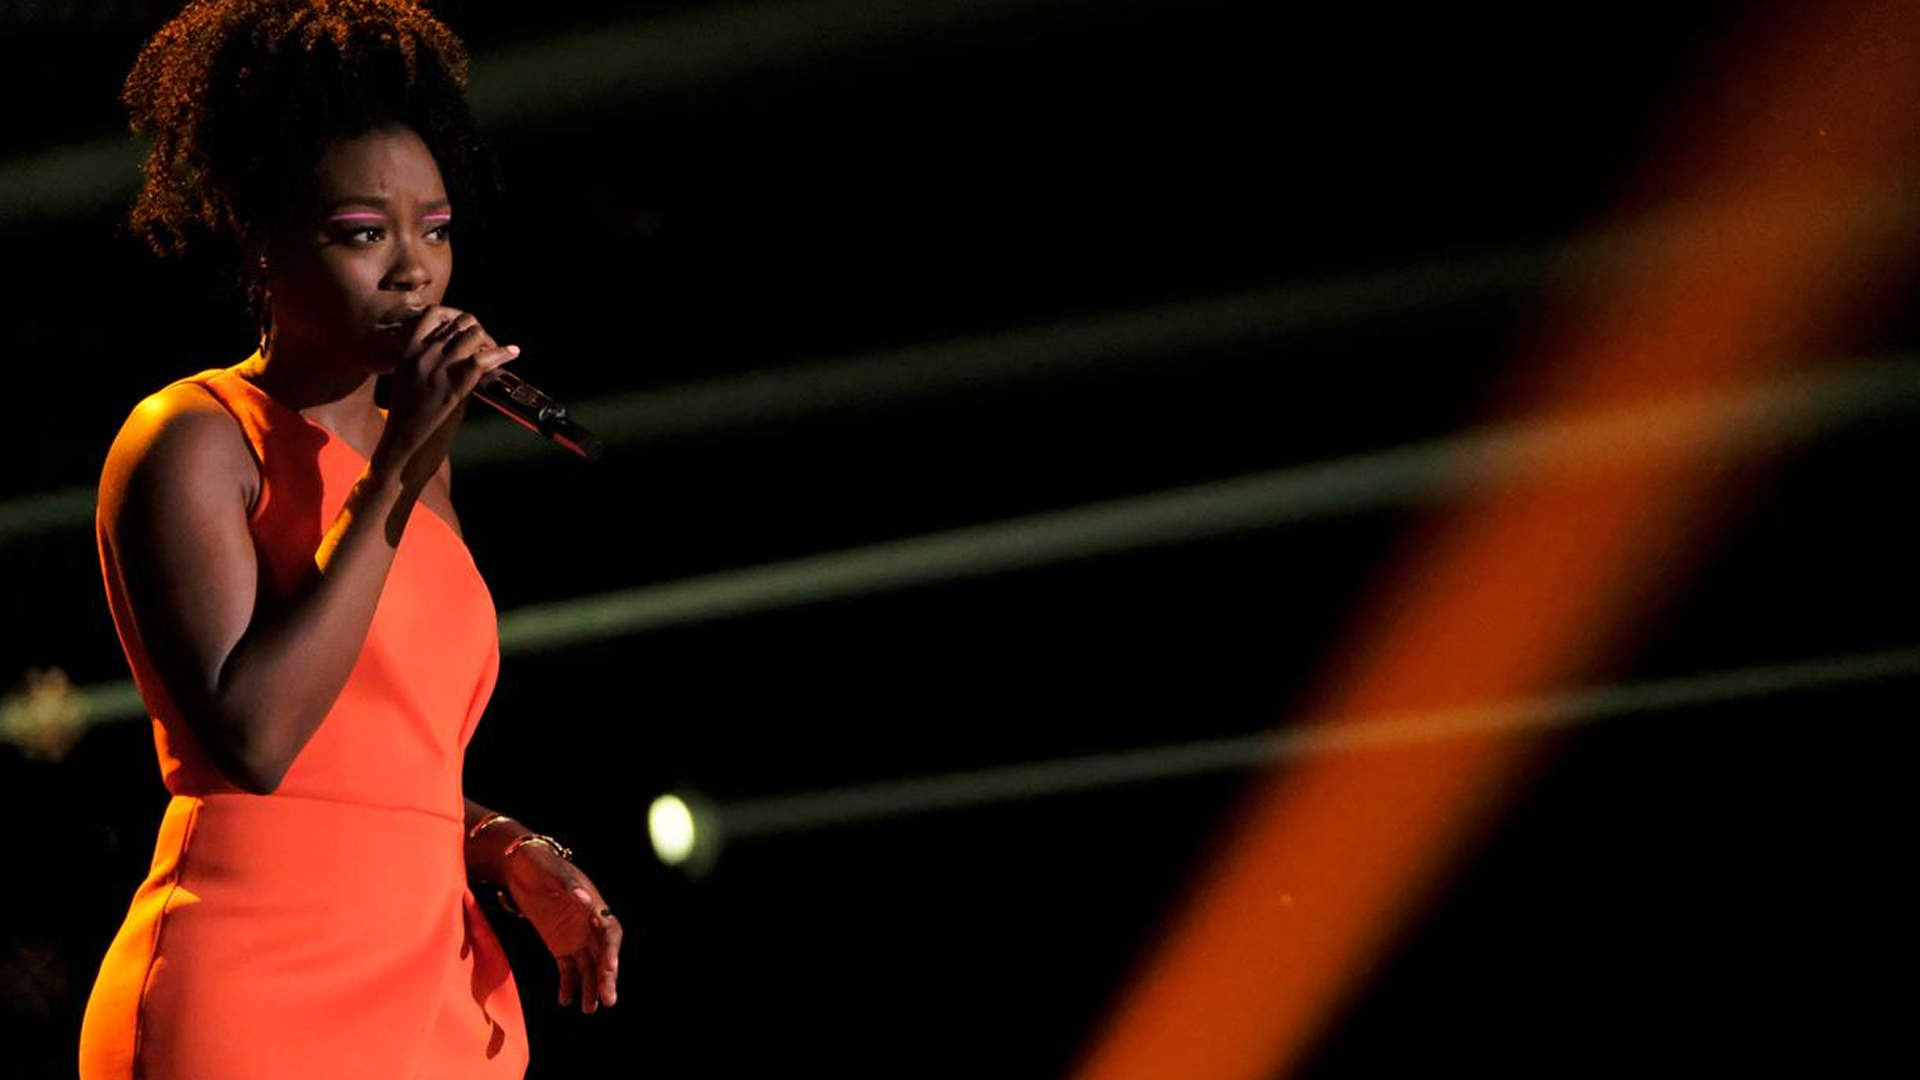 Vote Christiana Danielle the Voice 2018 Top 10 on 7 May 2018 with The Voice 2018 Season 14 Voting App Online